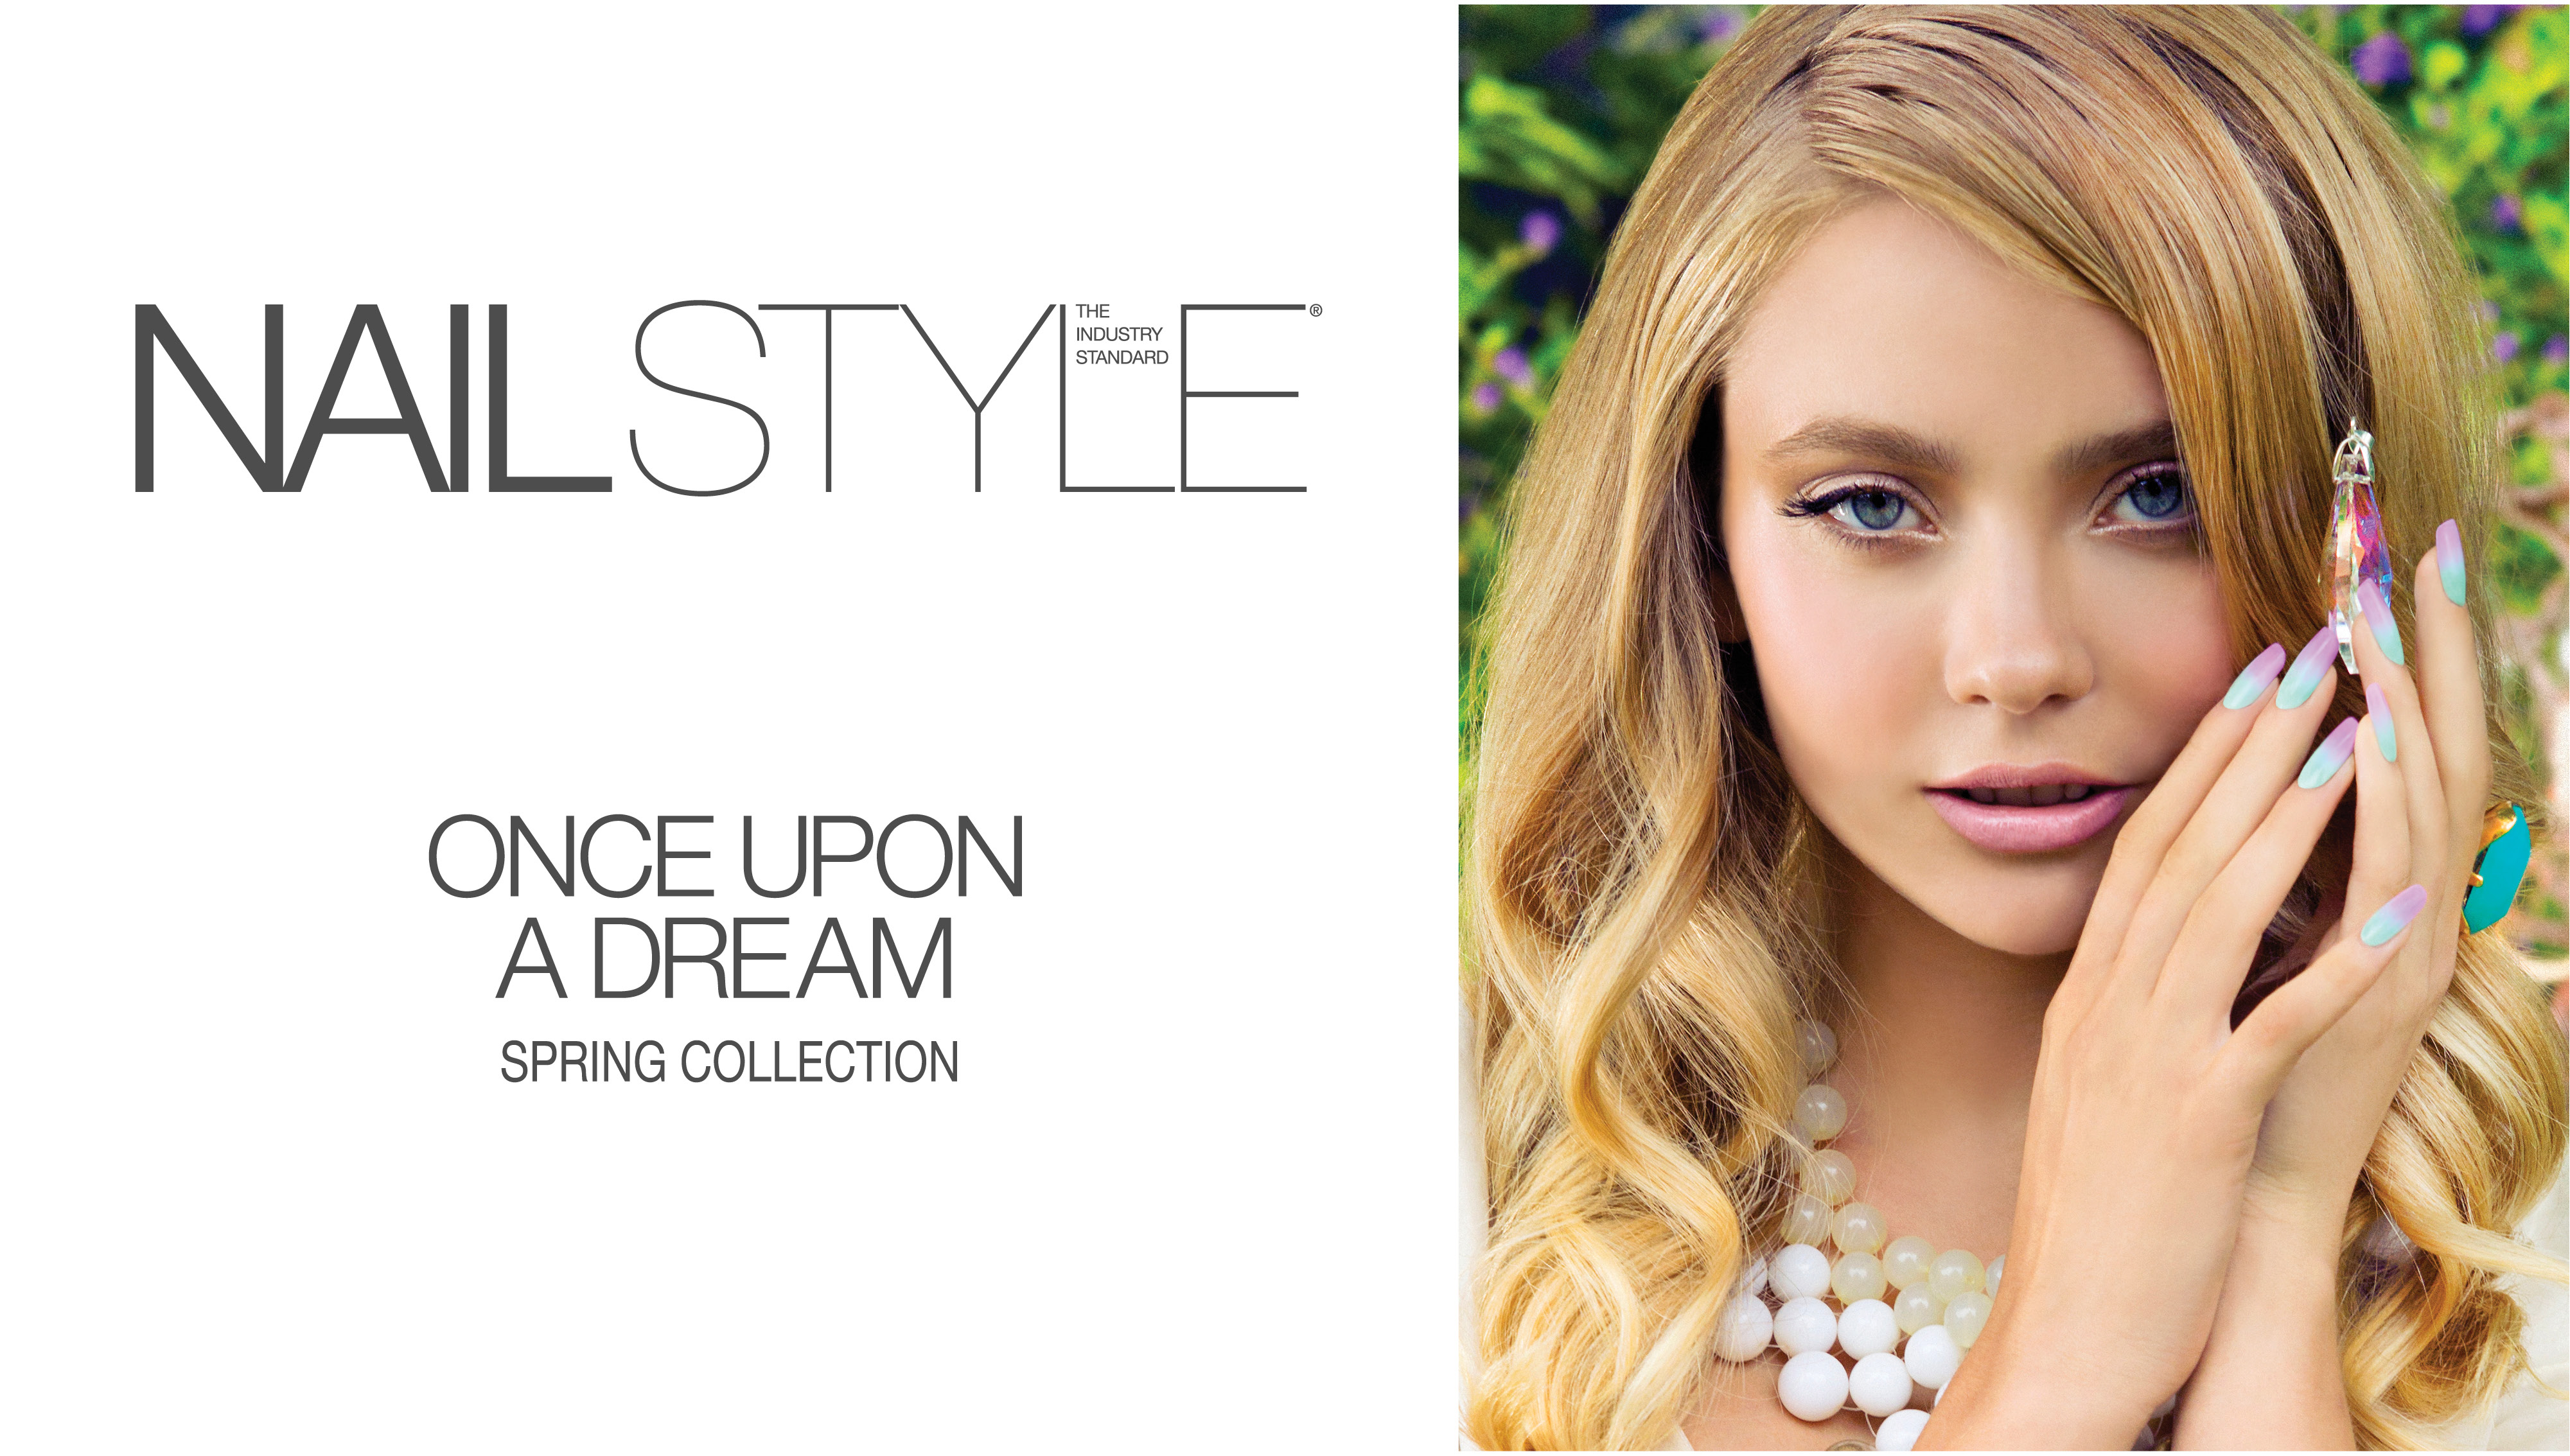 Nail Style: The Industry Standard, Once Upon a Dream: Spring Collection